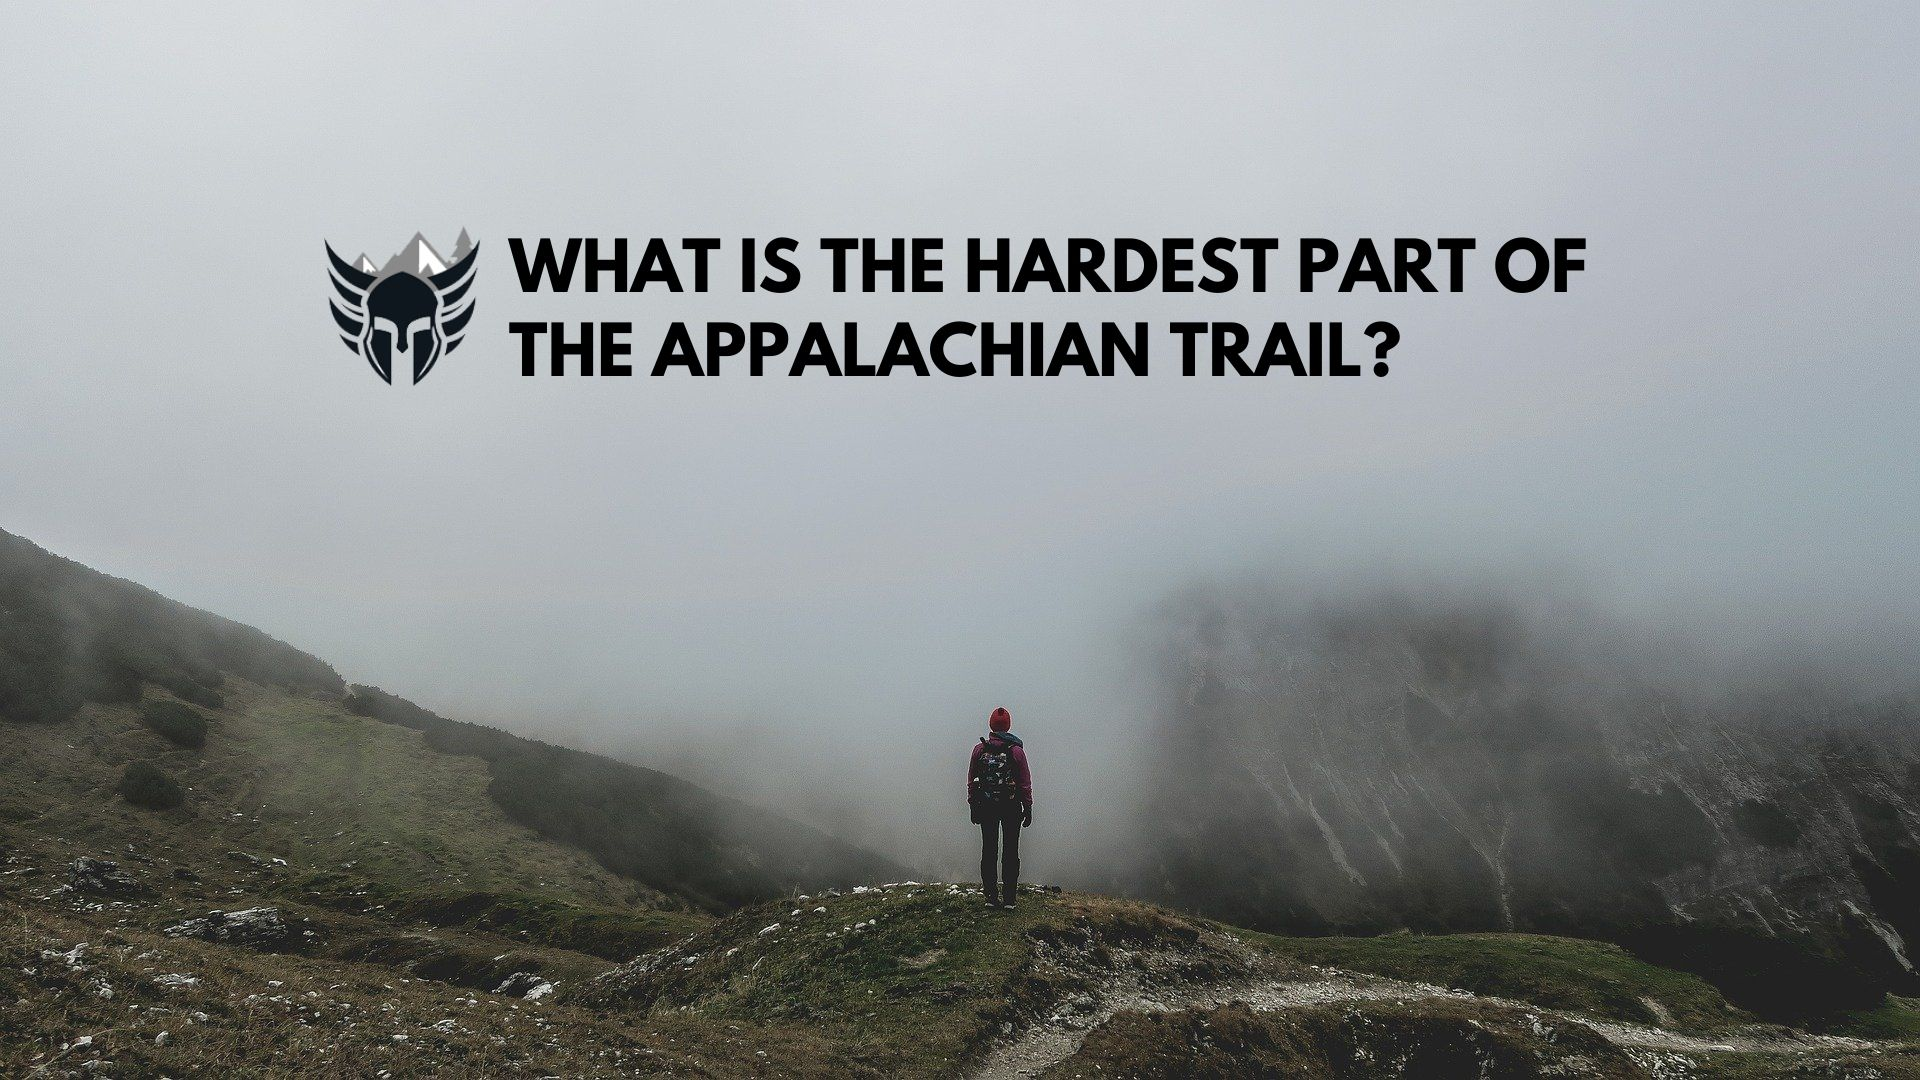 What Is The Hardest Part of the Appalachian Trail